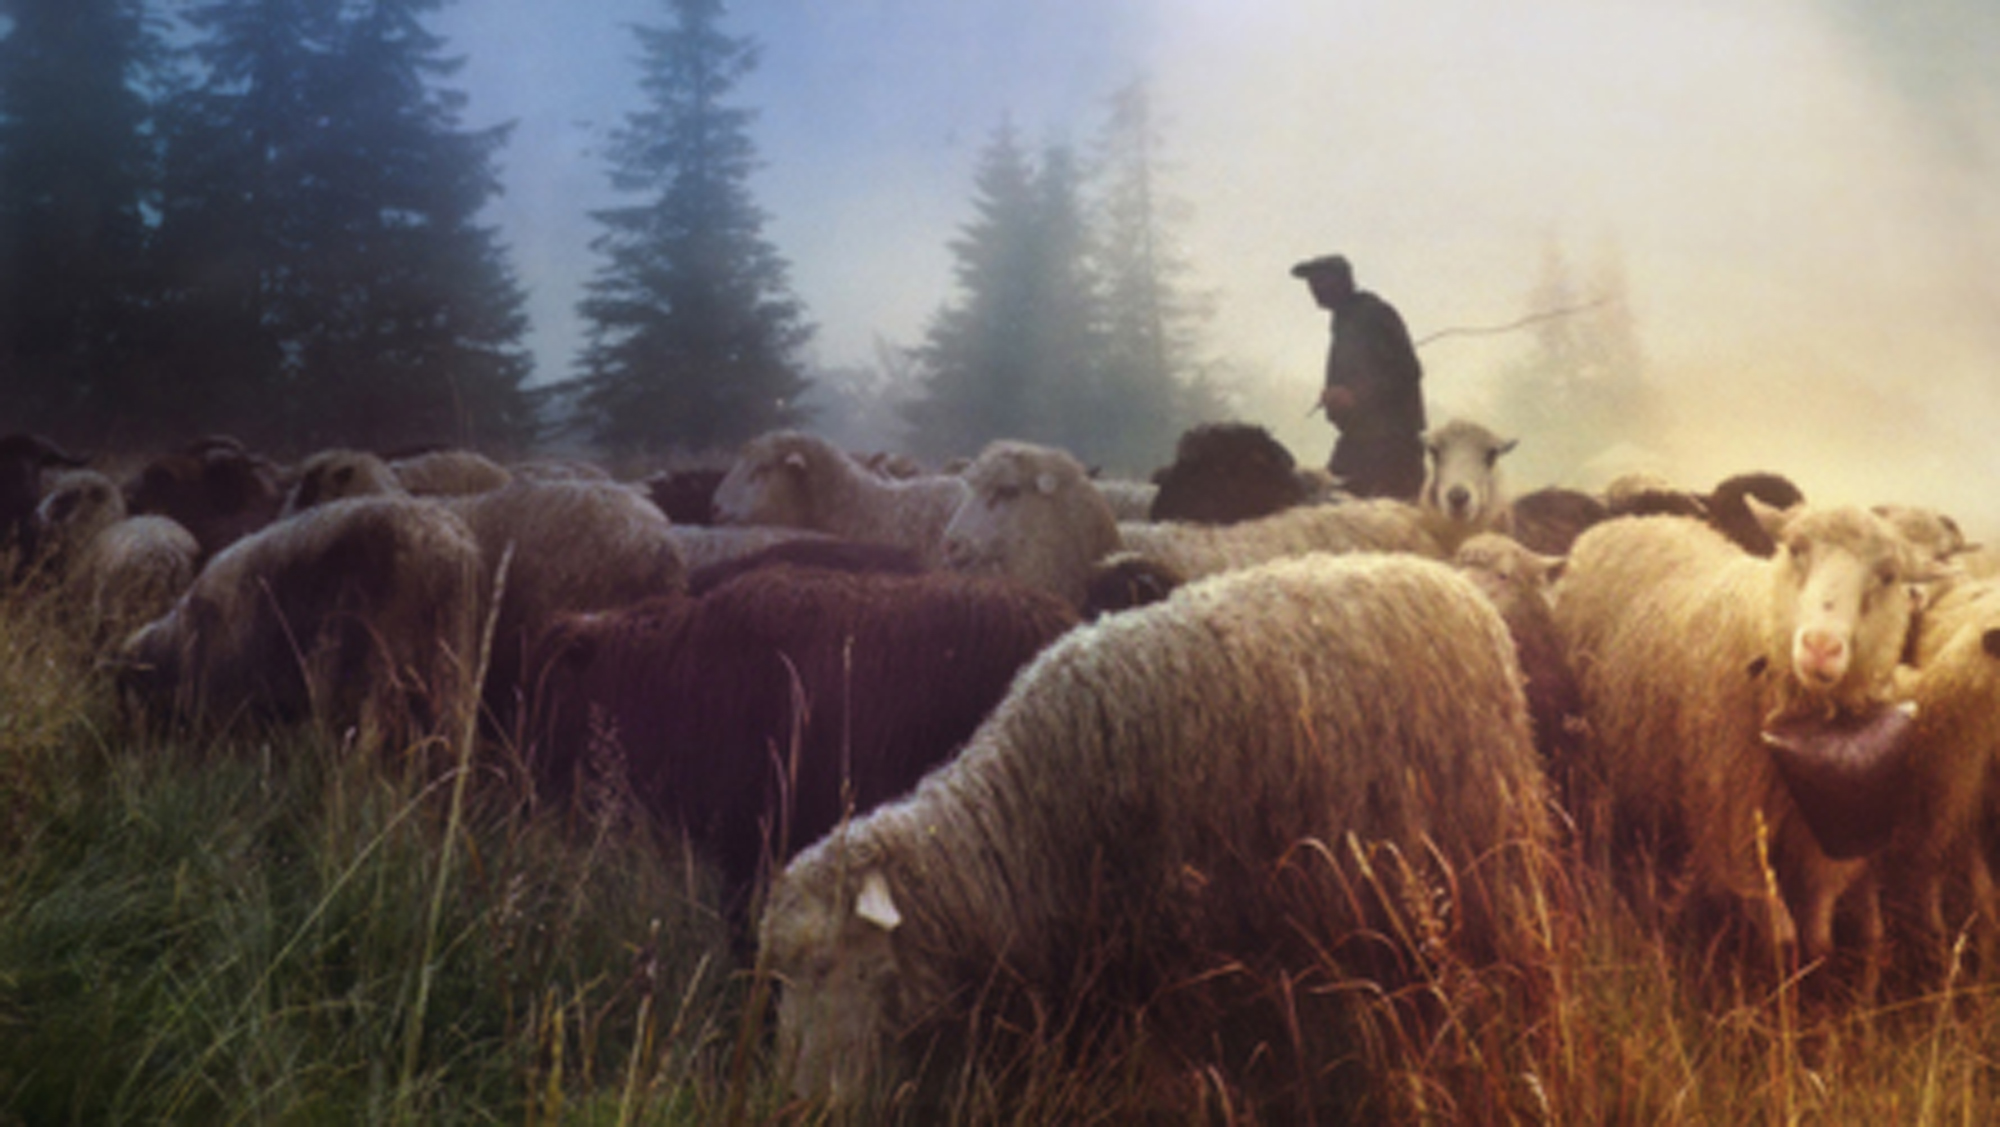 'Feed my sheep': A shepherd's call to war